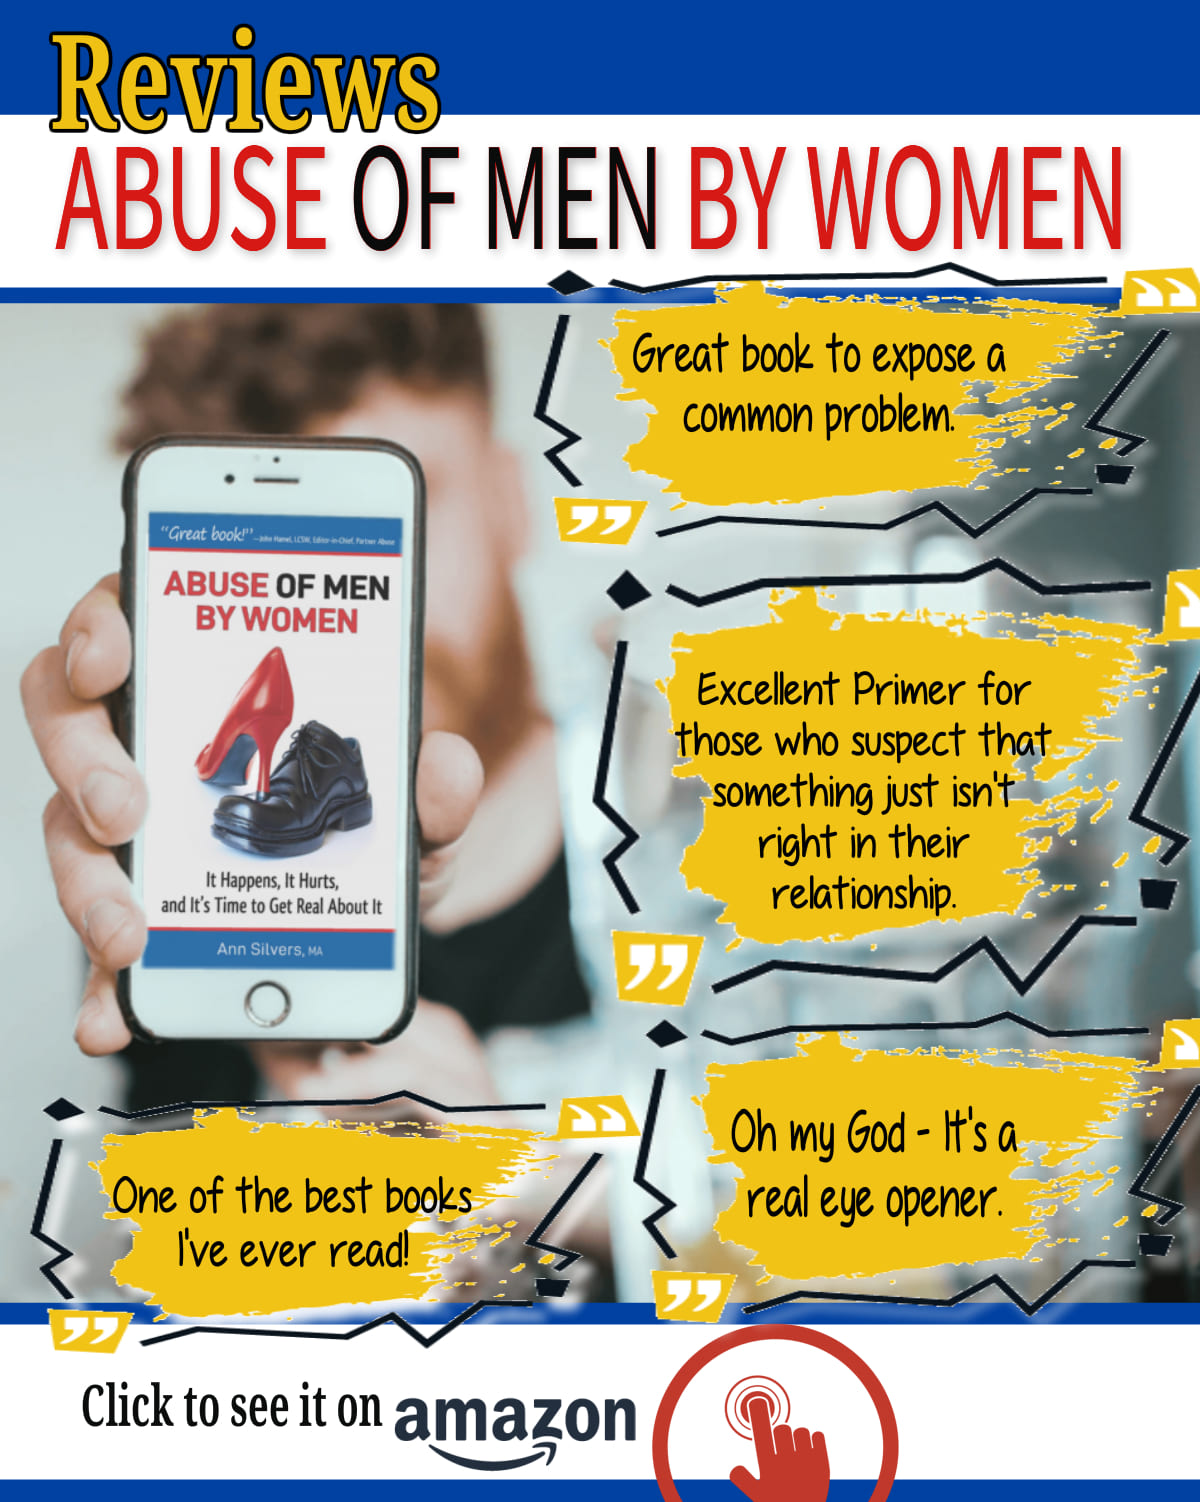 Abuse OF Men BY Women book, women abusing men, women who abuse men, a controlling and abusive wife, verbally and emotionally abusive wife or girlfriend, examples of financial abuse